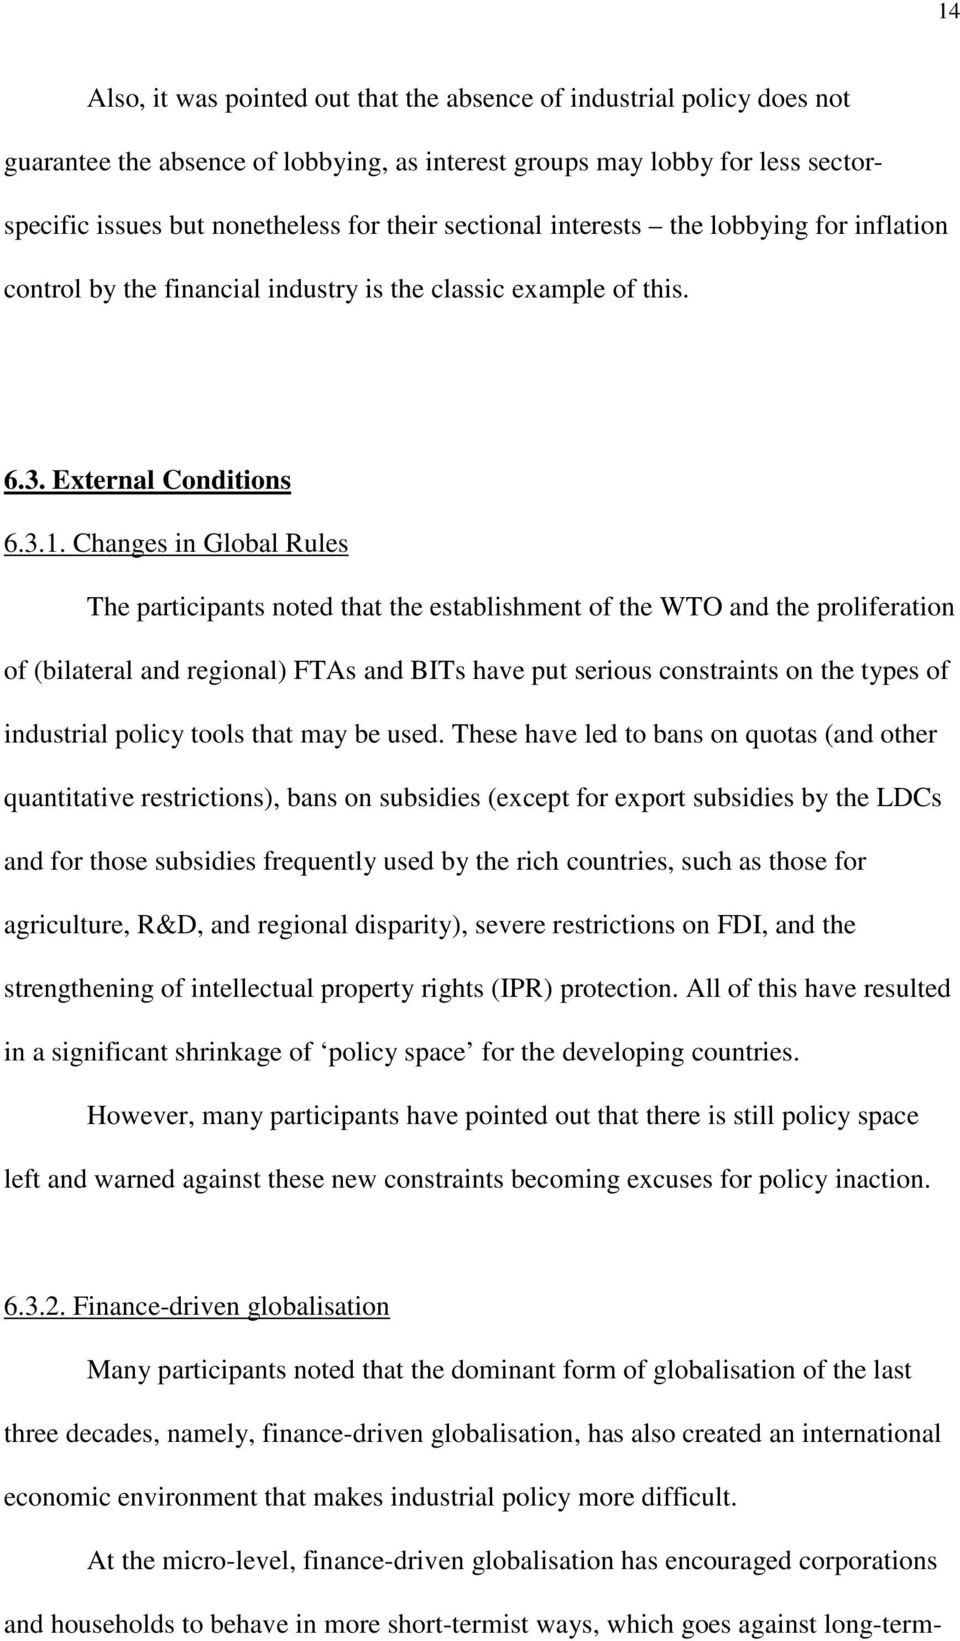 Changes in Global Rules The participants noted that the establishment of the WTO and the proliferation of (bilateral and regional) FTAs and BITs have put serious constraints on the types of